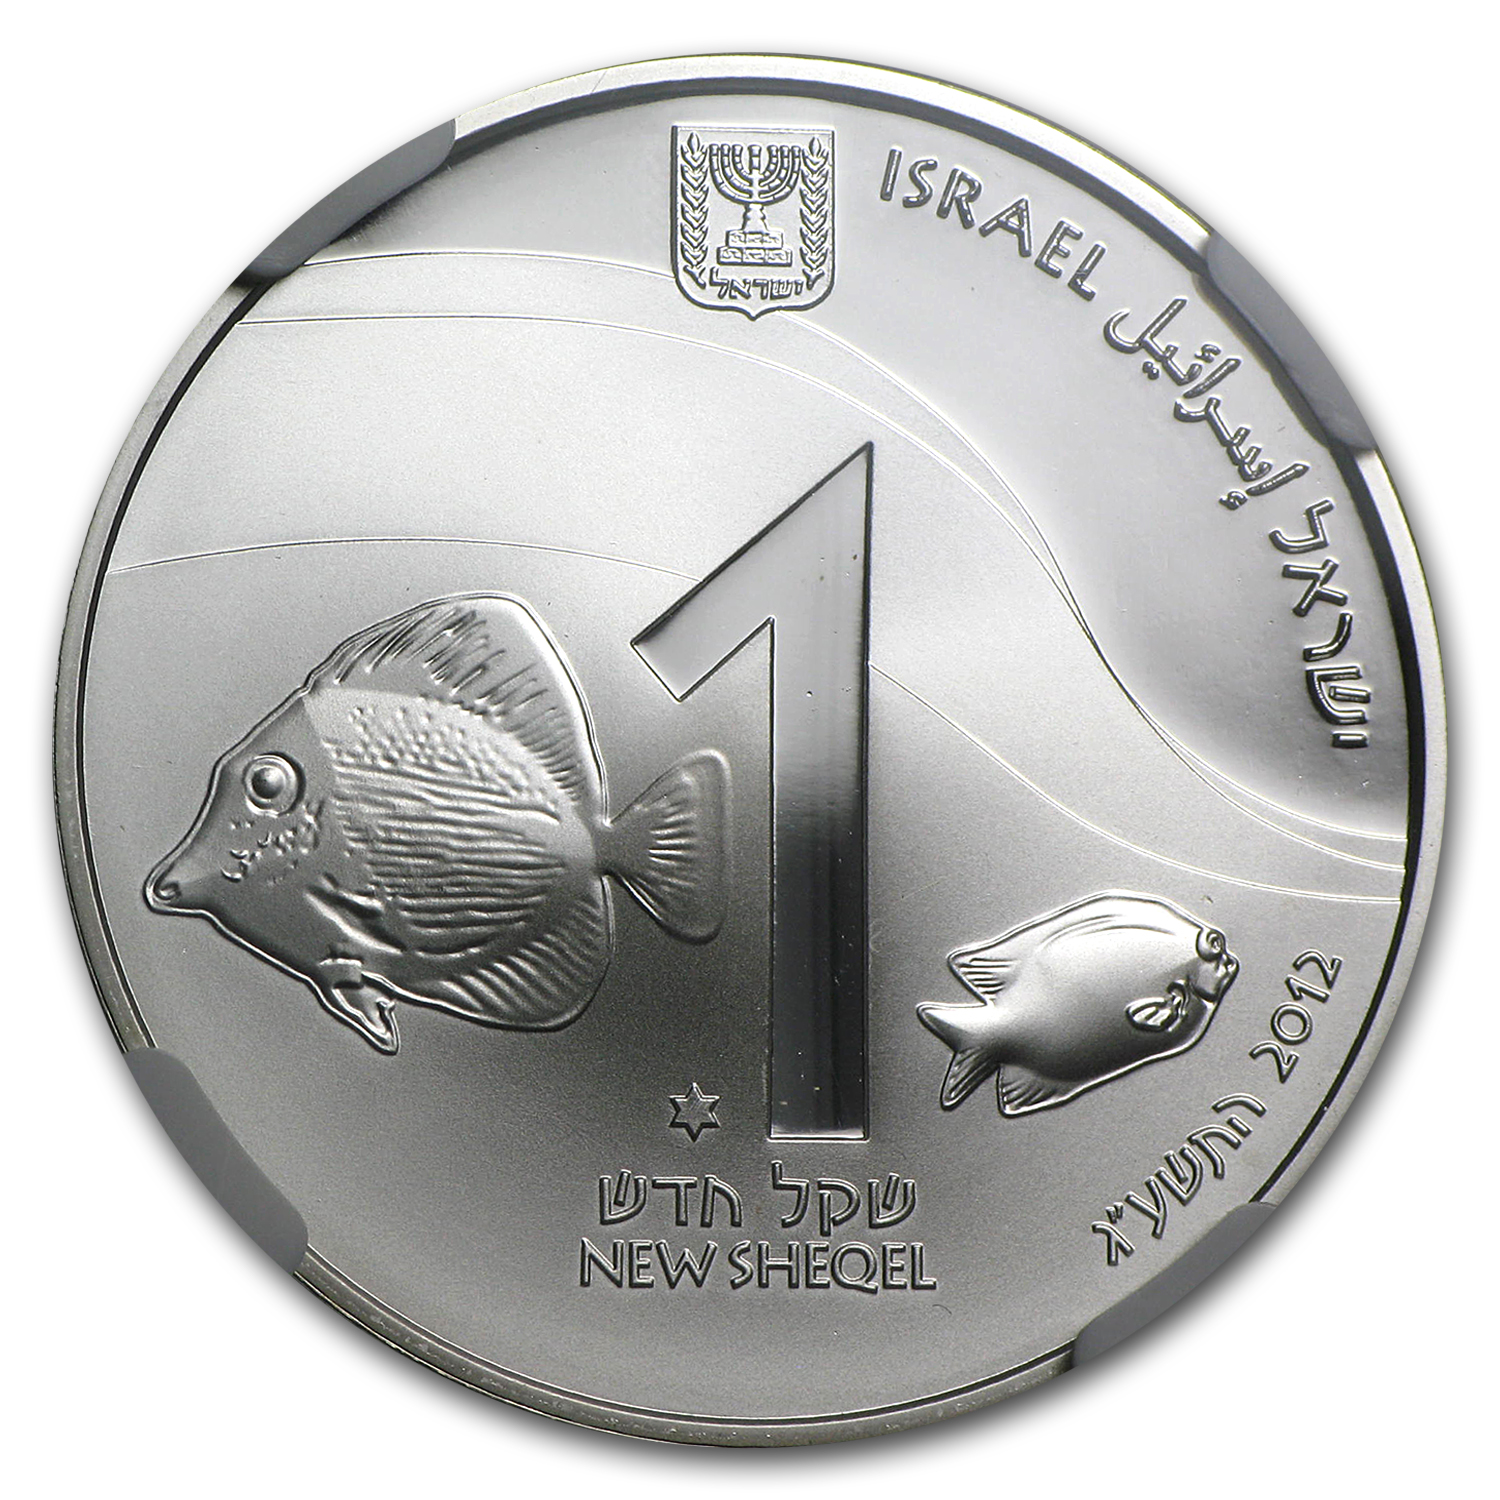 2012 Israel Coral Reef, Eilat Proof-Like 1 NIS Coin MS-69 NGC